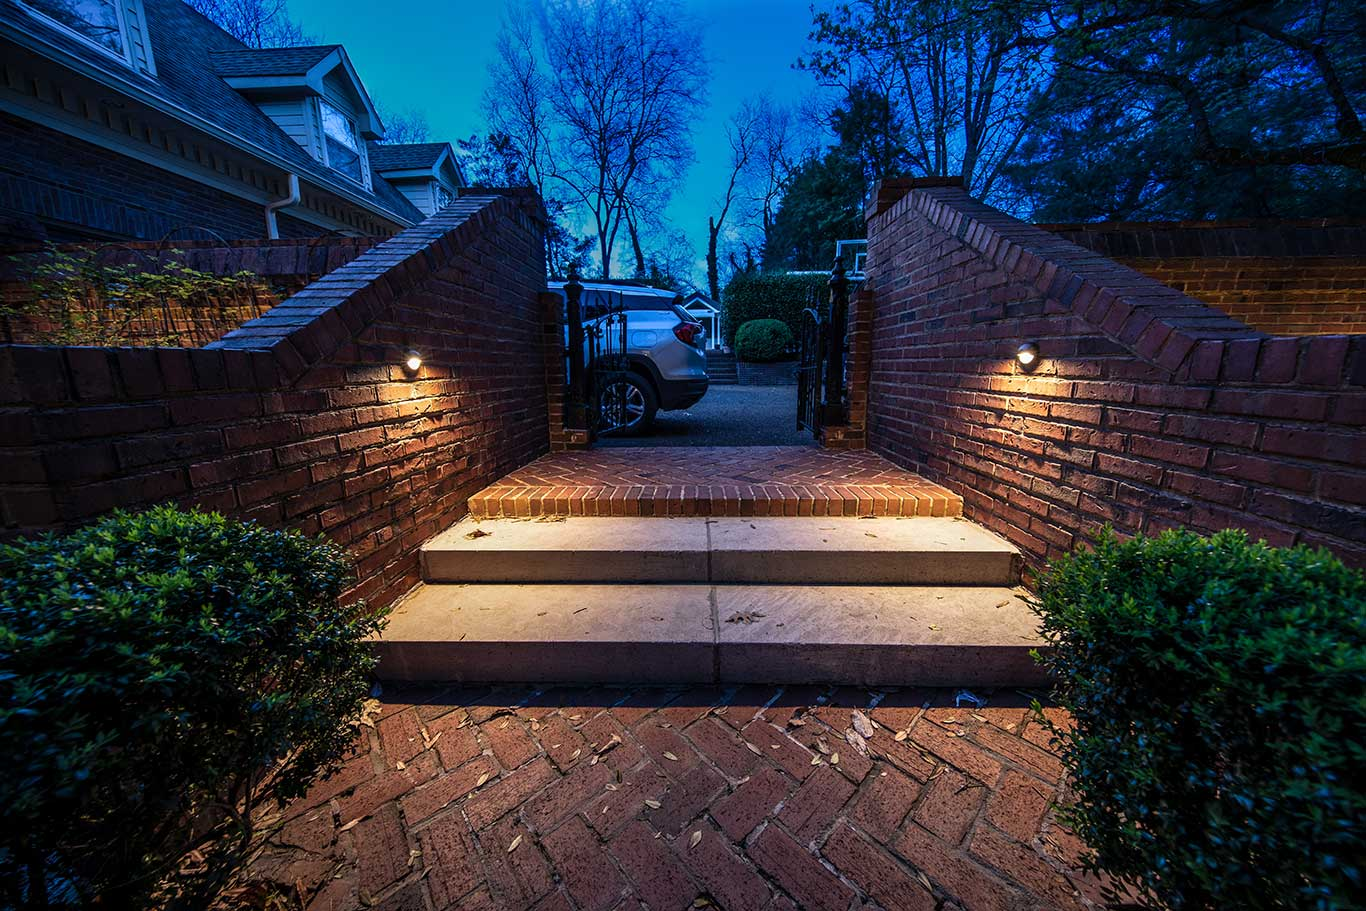 wall mounted downlights lighting steps in back courtyard